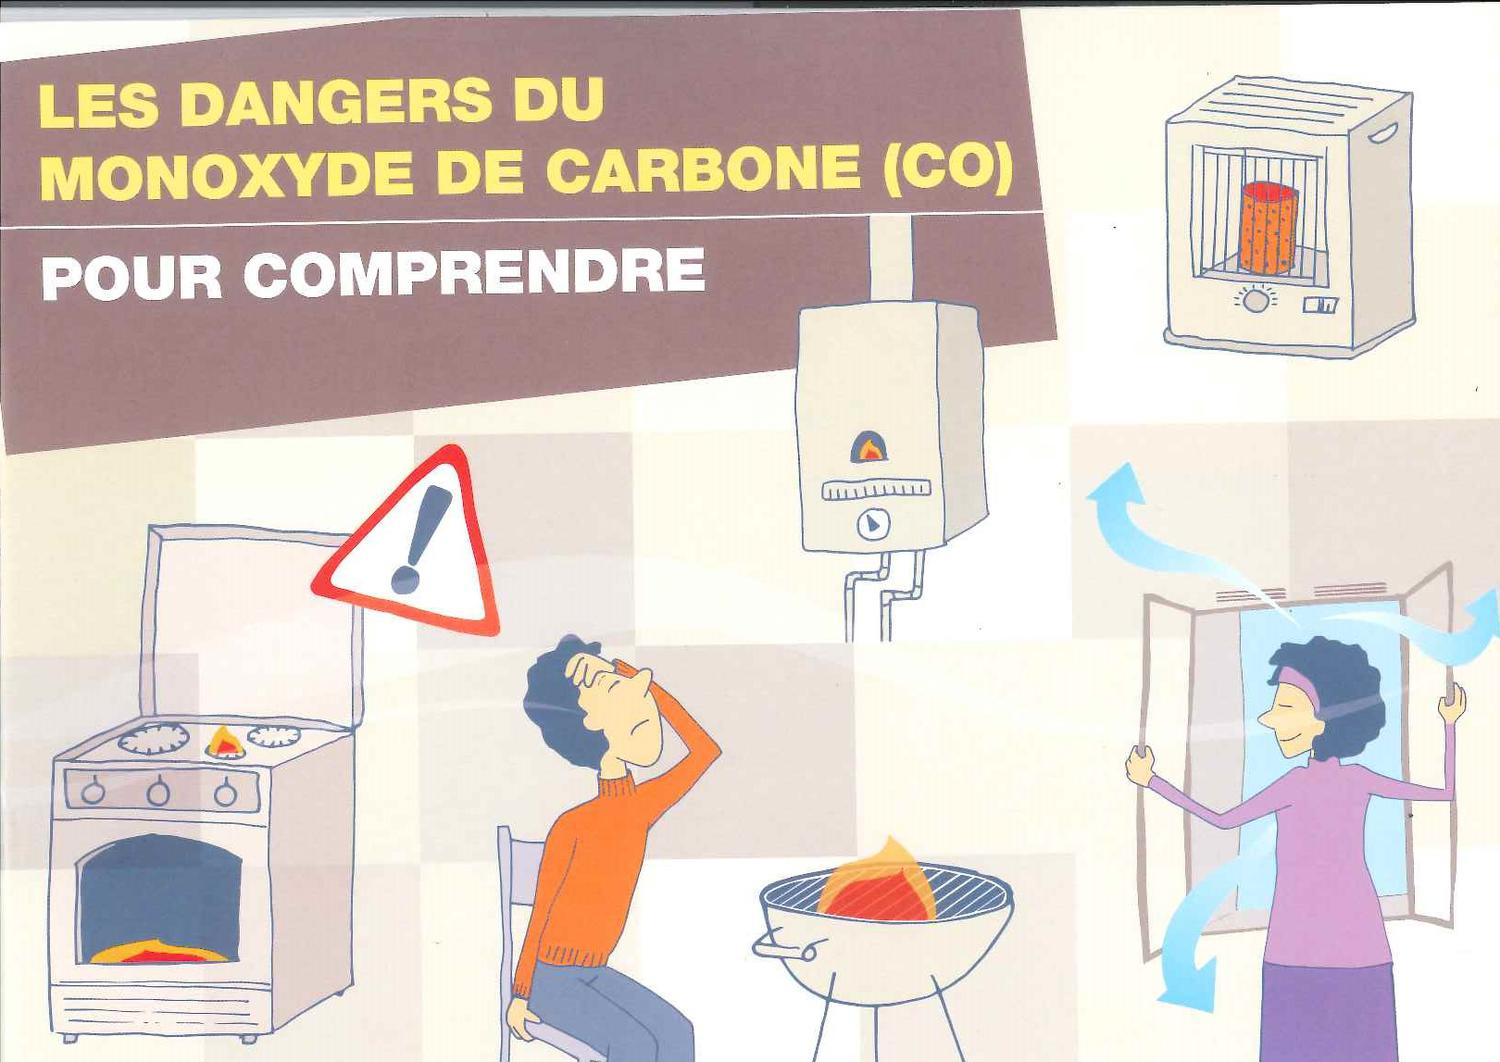 Les dangers du CO